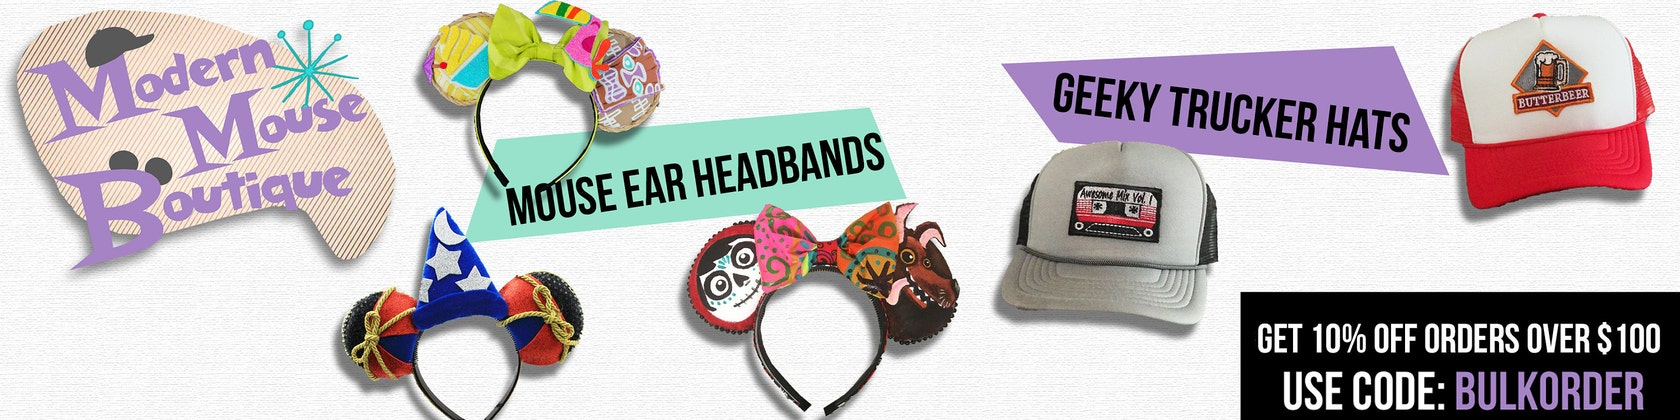 dcc806dadff Original Mouse Ear Headbands and by ModernMouseBoutique on Etsy